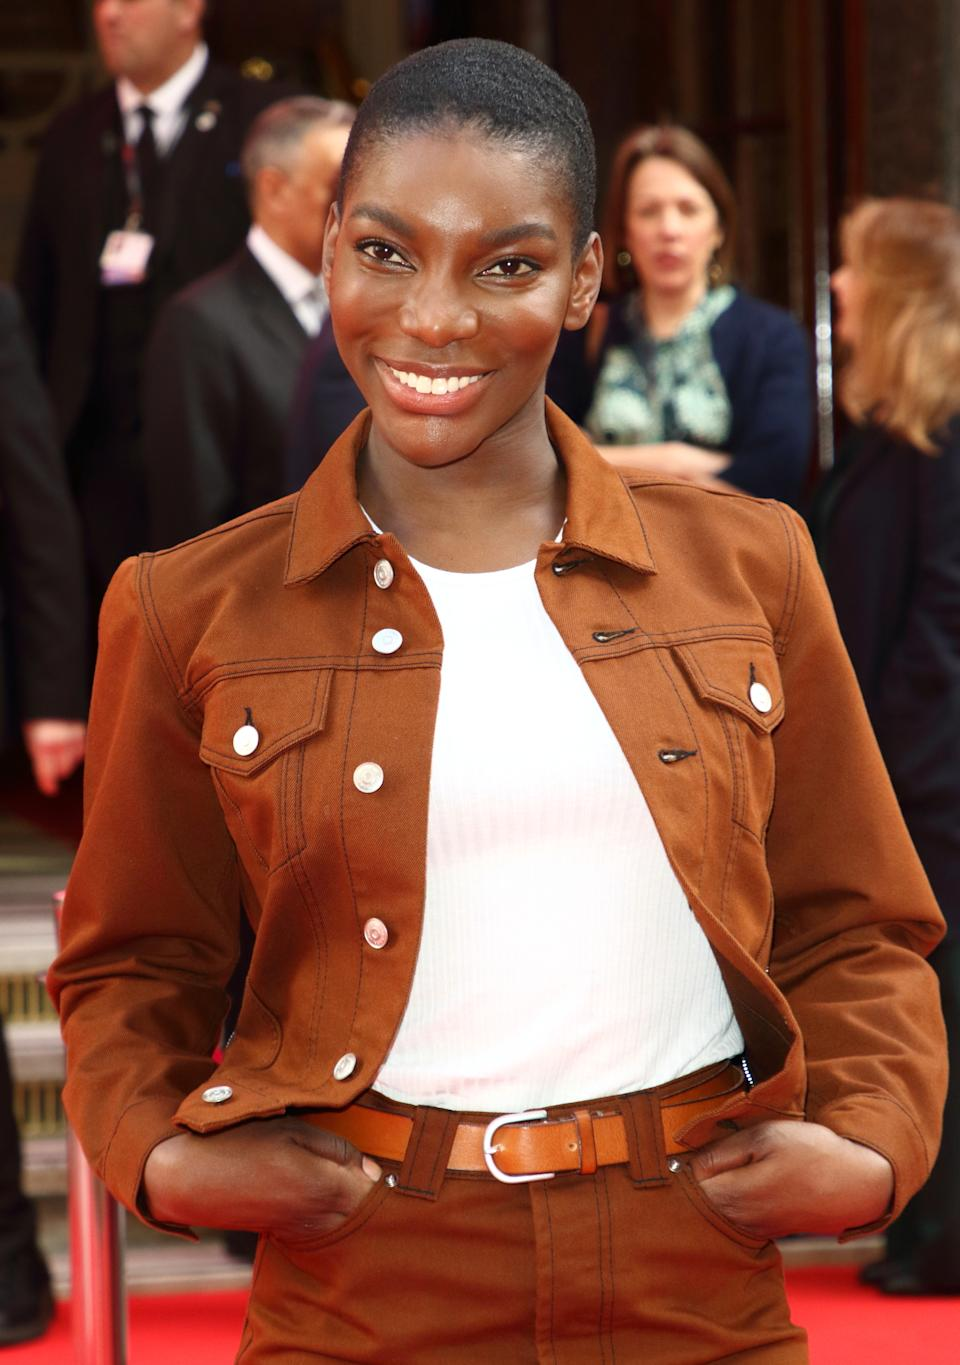 Michaela Coel attends the Prince's Trust And TK Maxx & Homesense Awards at London Palladium. (Photo by Keith Mayhew / SOPA Images/Sipa USA)